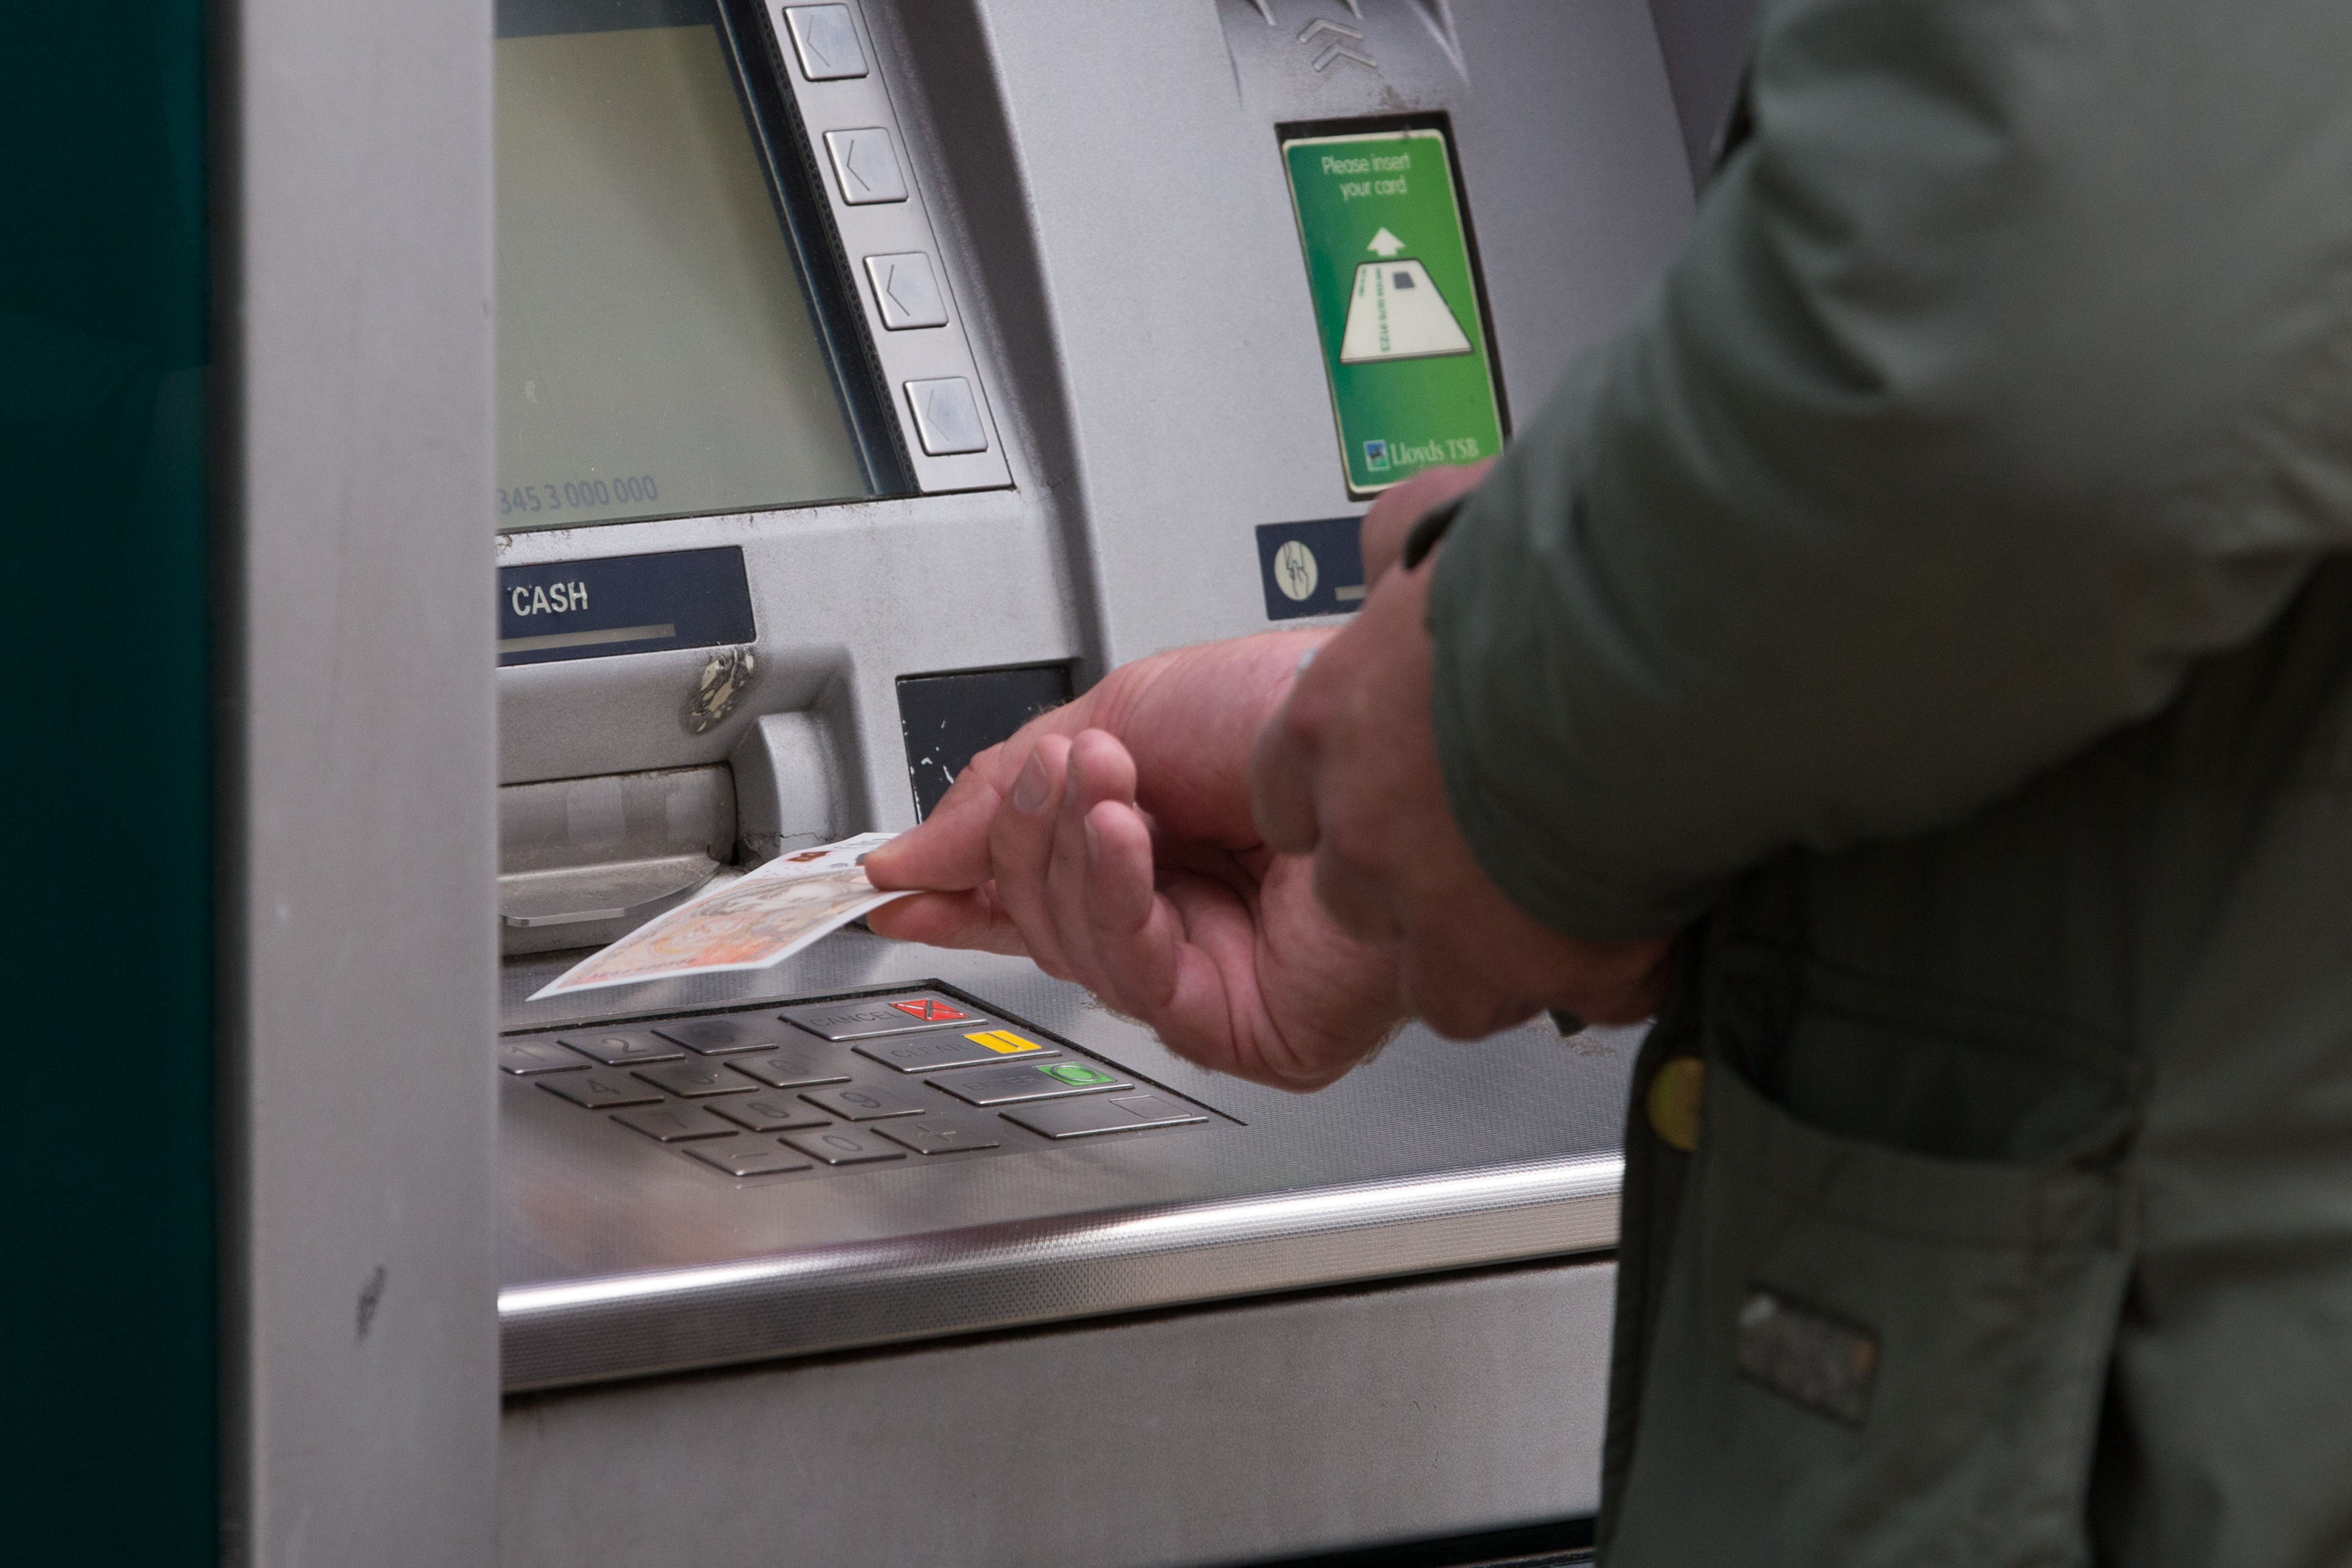 The number of free cash machines in the UK has been in decline for many years. Credit: PA